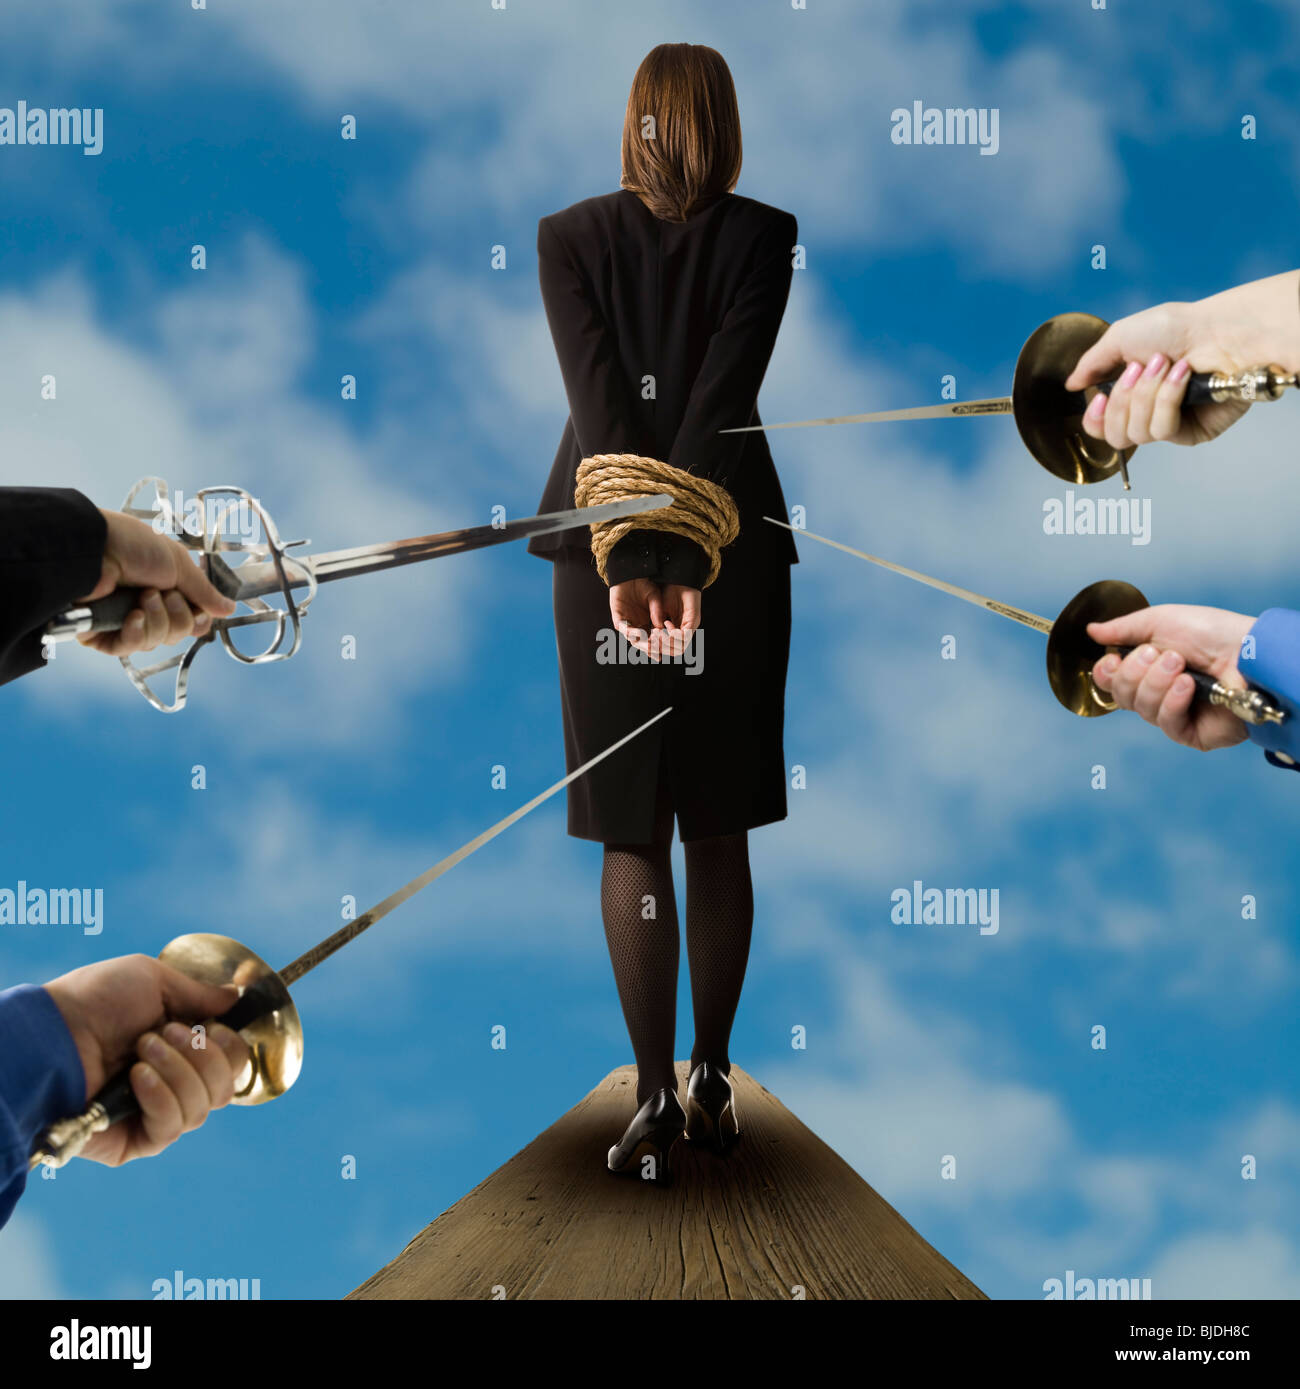 businessperson walking the plank - Stock Image